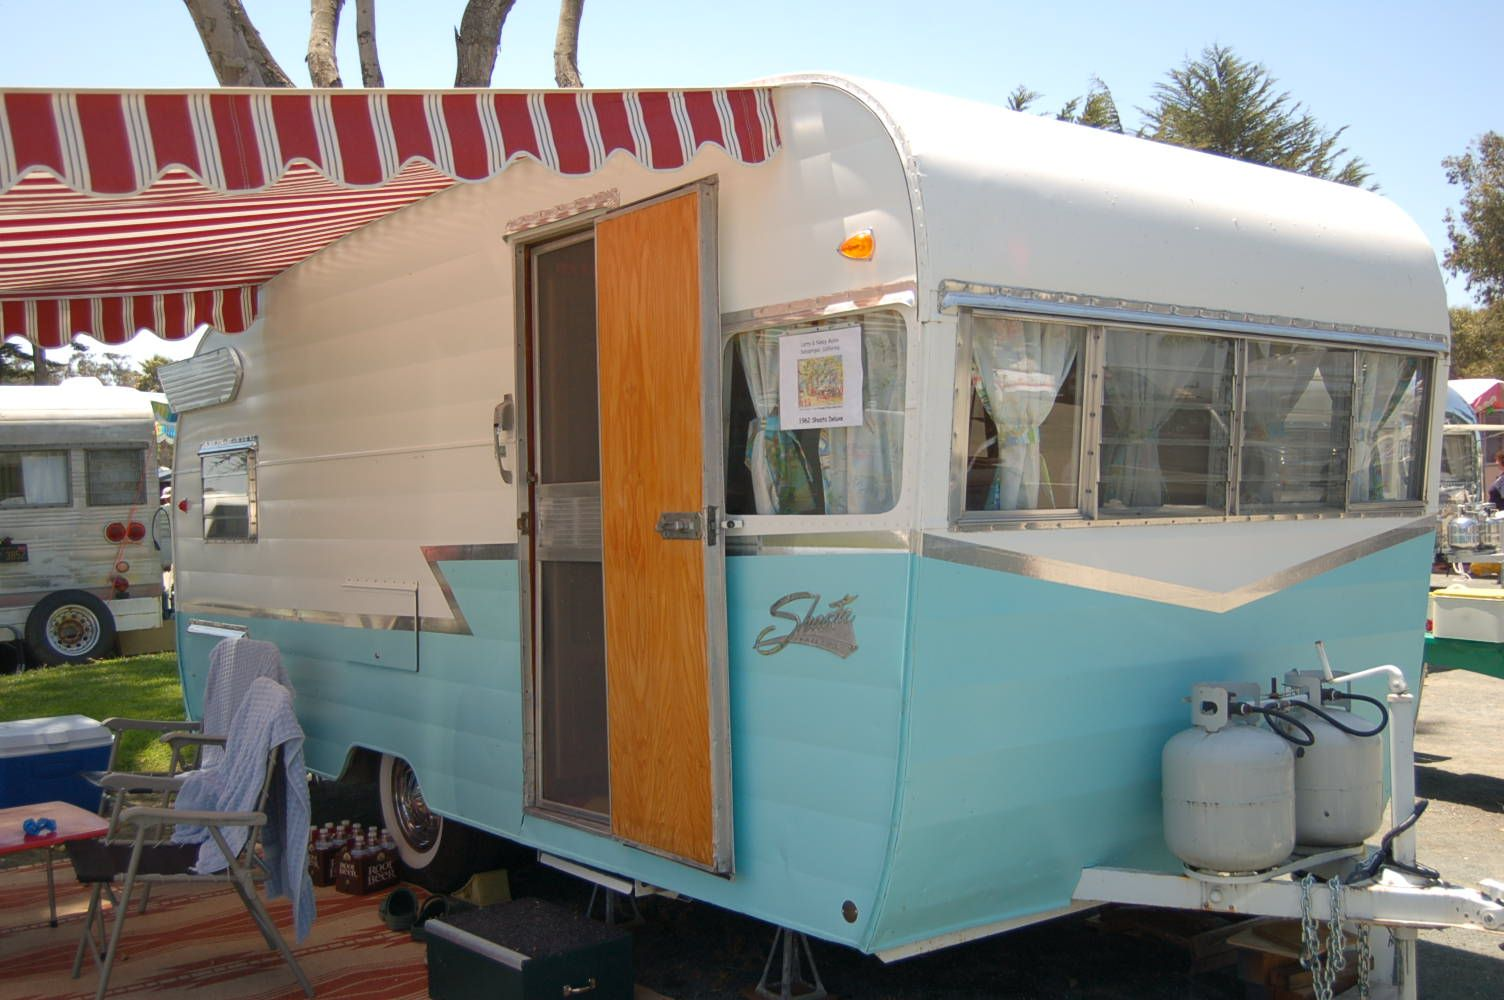 1967 Shasta Compact White Side Awning With Scalloped Edges On A